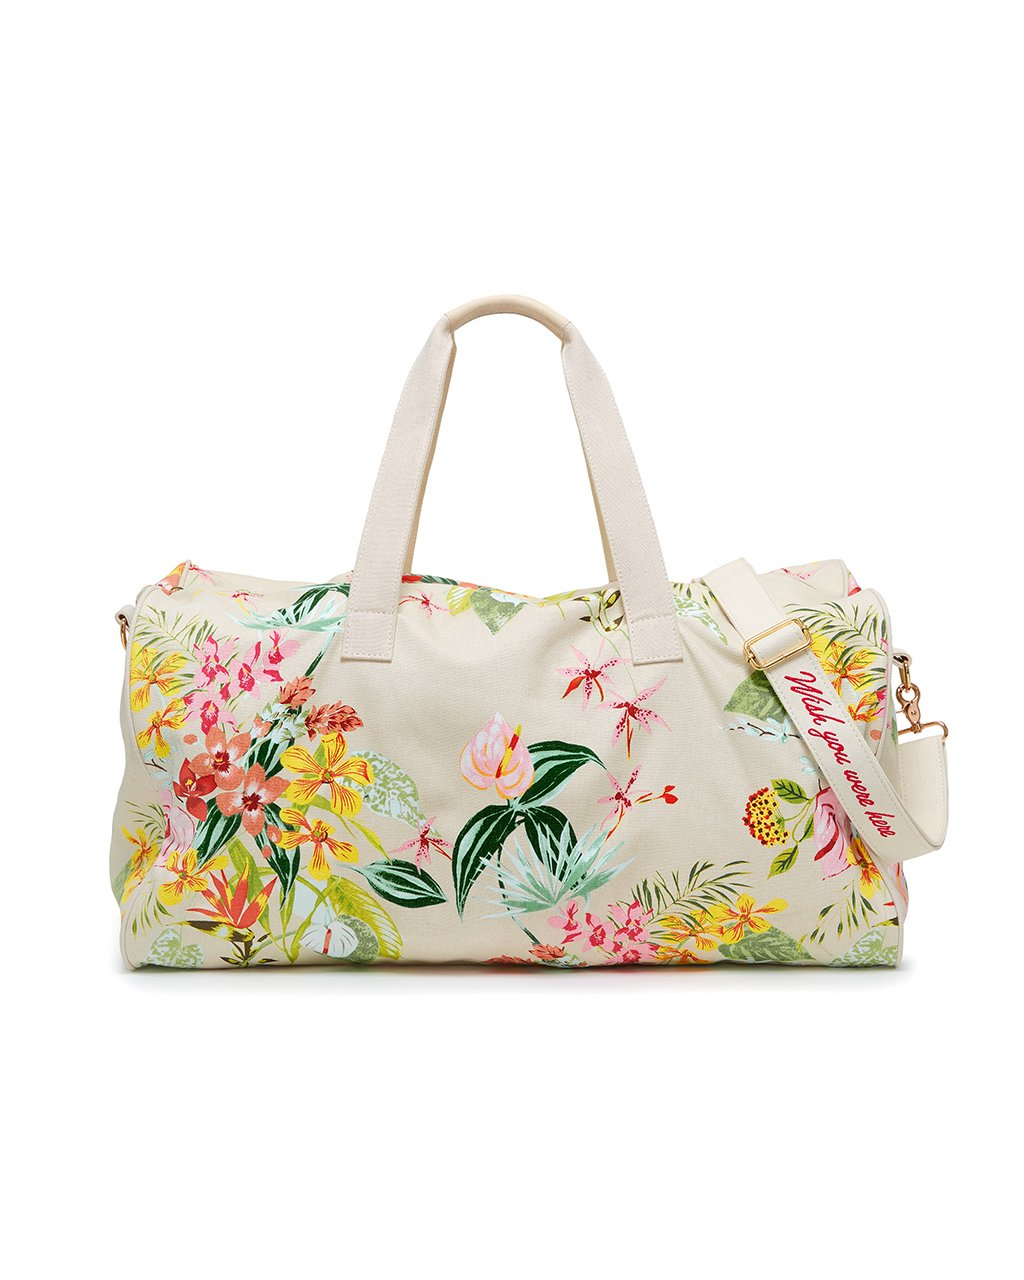 Getaway Duffle Bag - Paradiso by ban.do - duffle - ban.do 26ecdfa4bc744